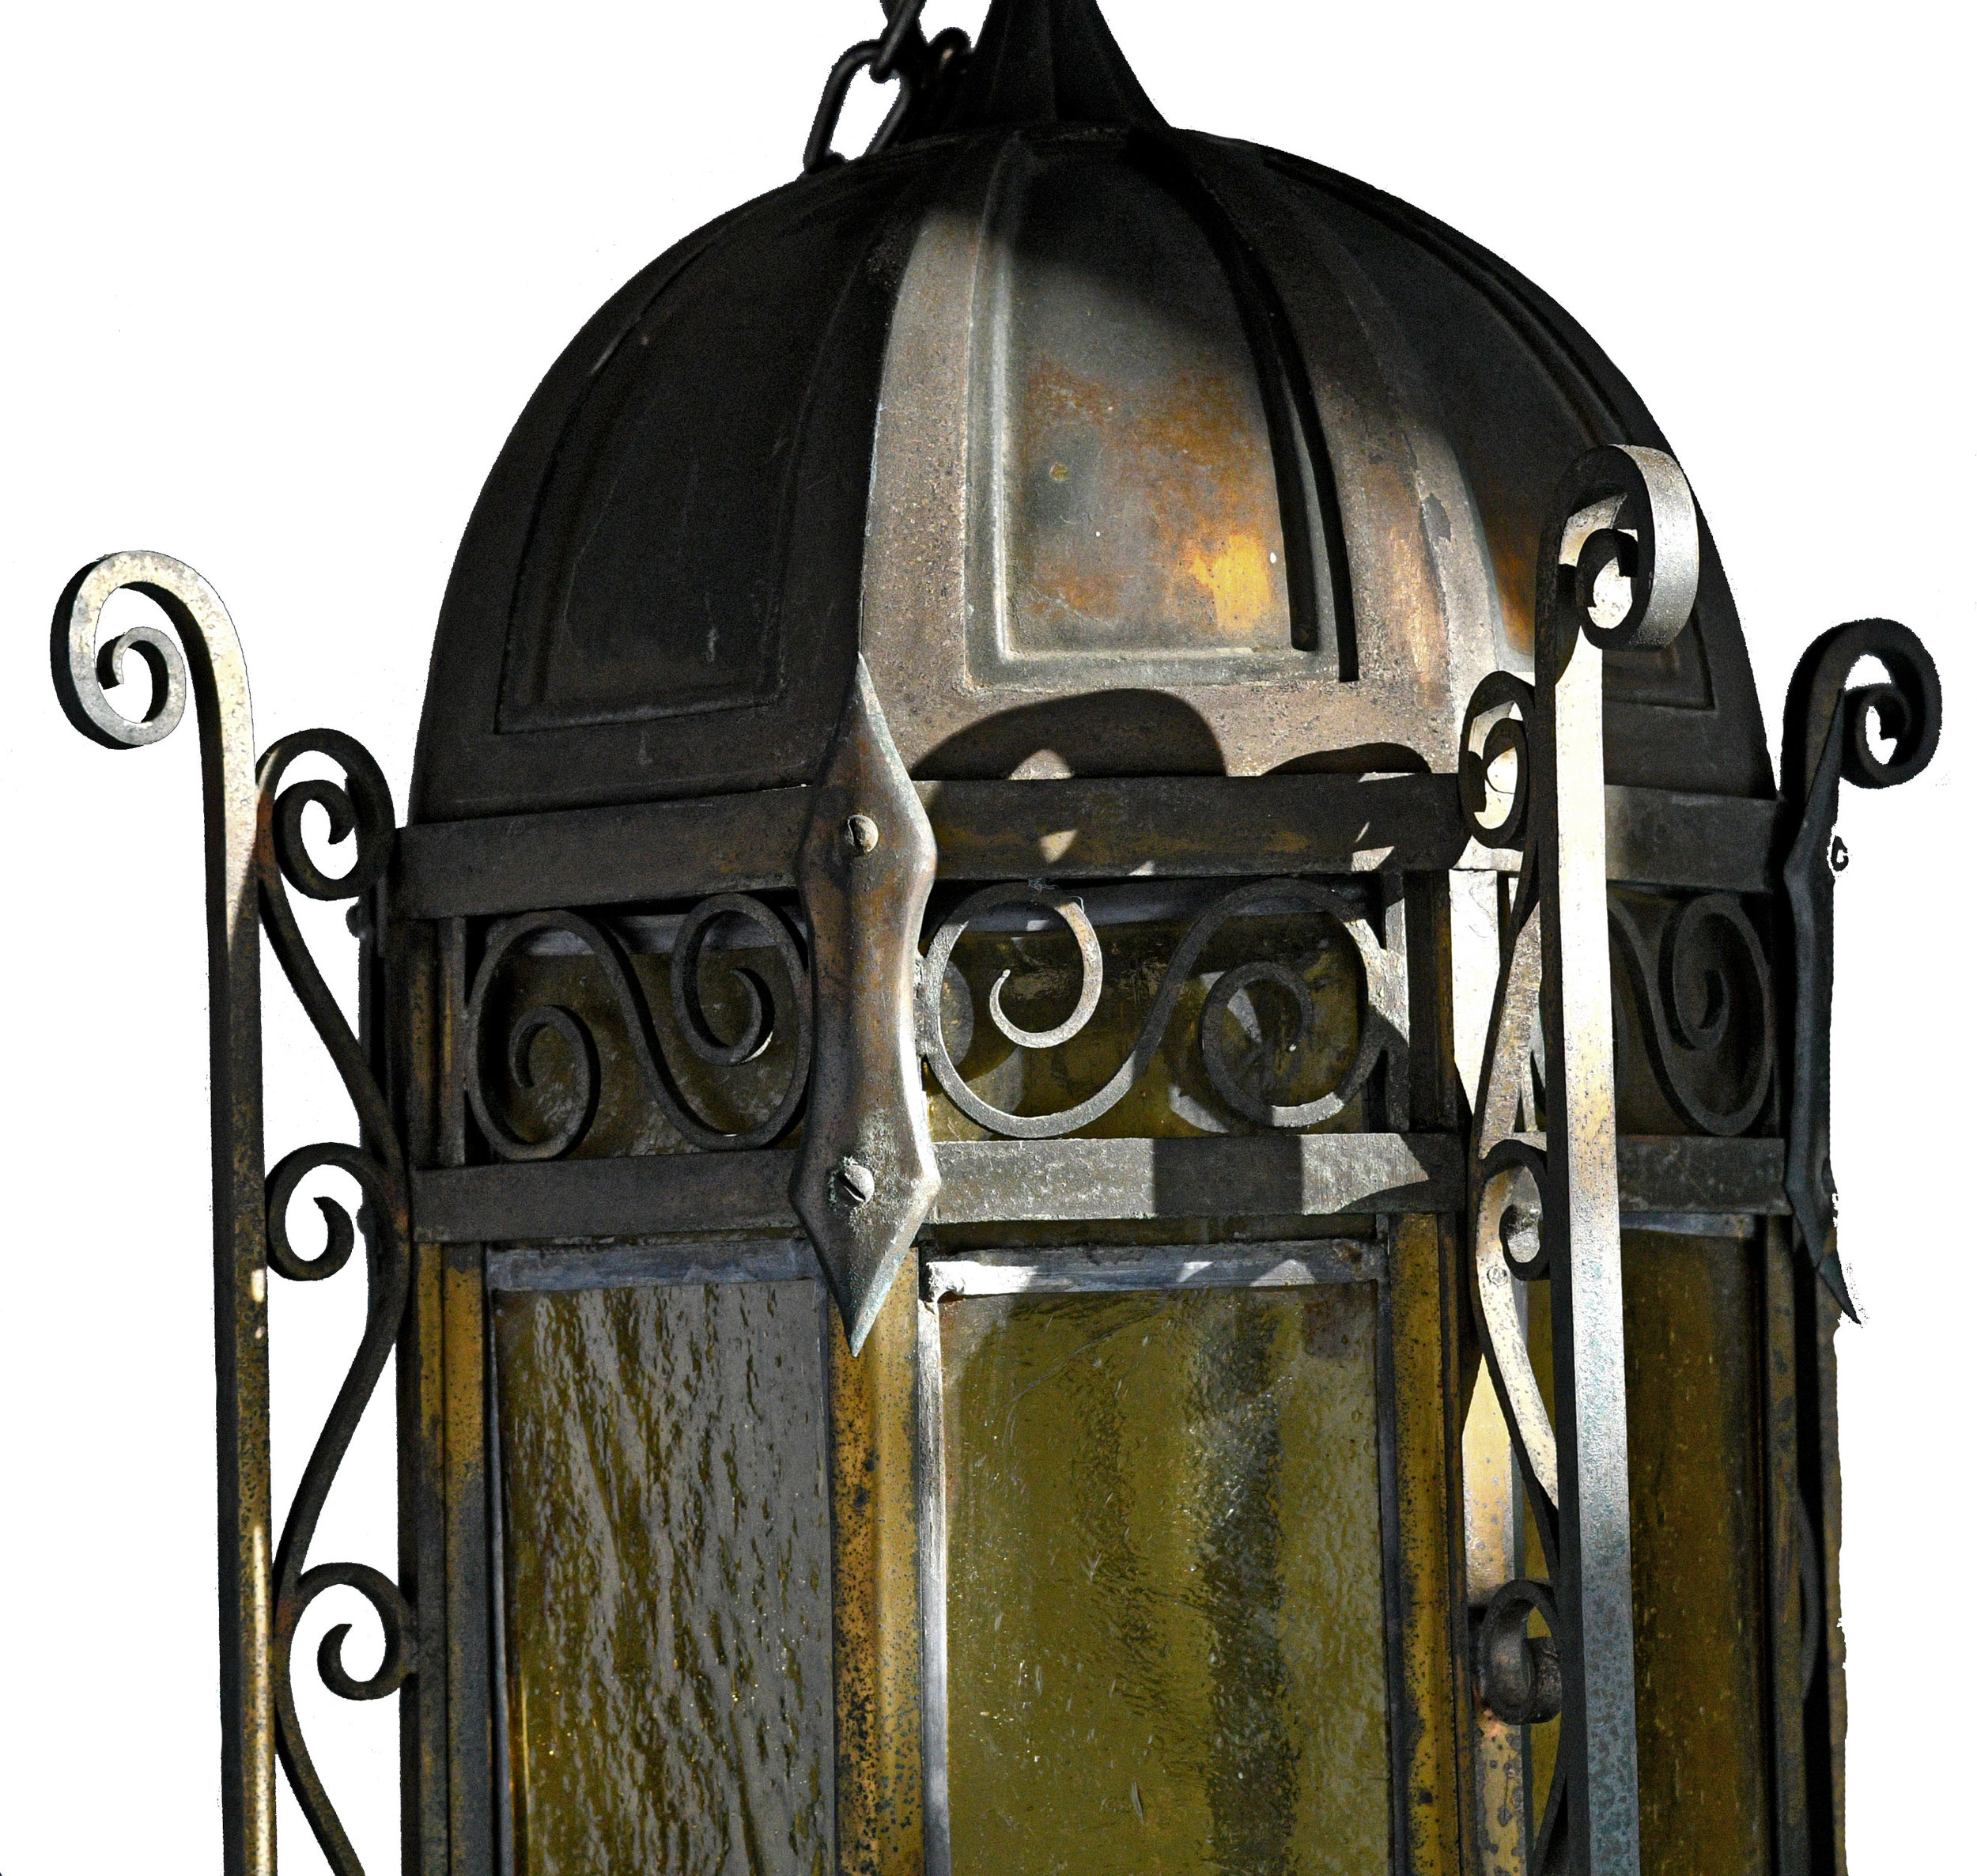 43187-Large-brass-larntern-with-leaded-panels-1.jpg